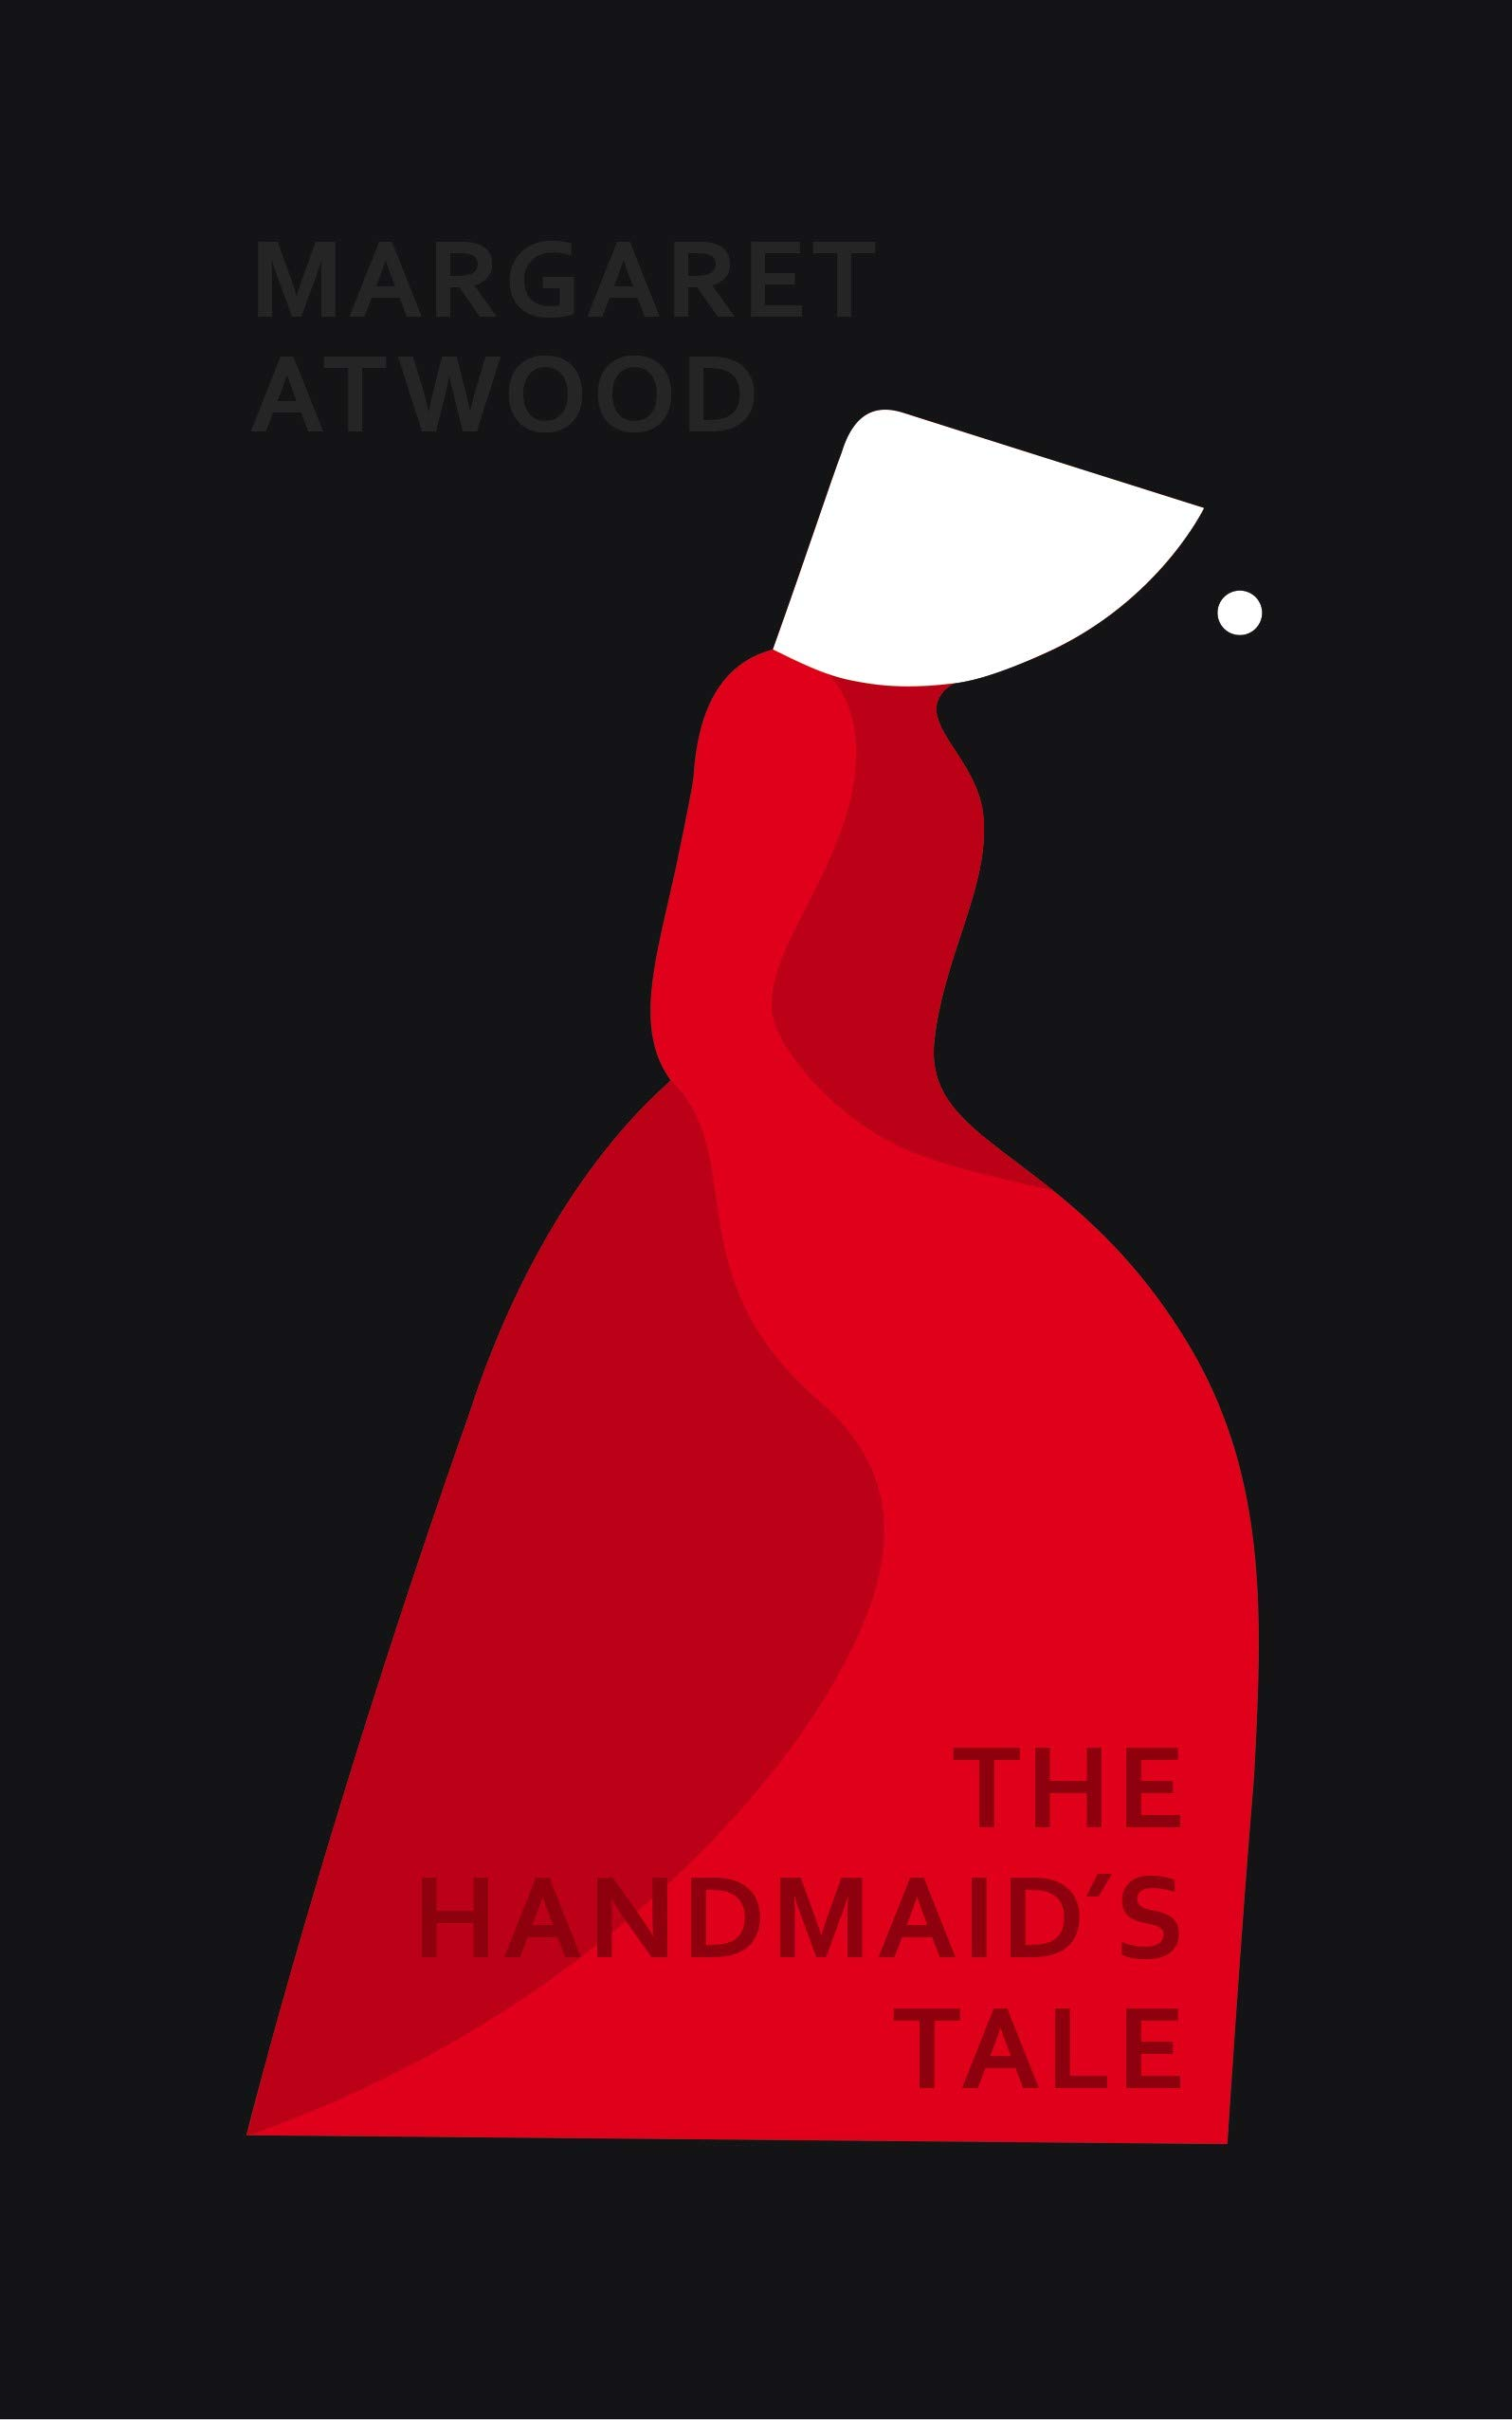 Image result for The Handmaid's Tale by Margaret Atwood